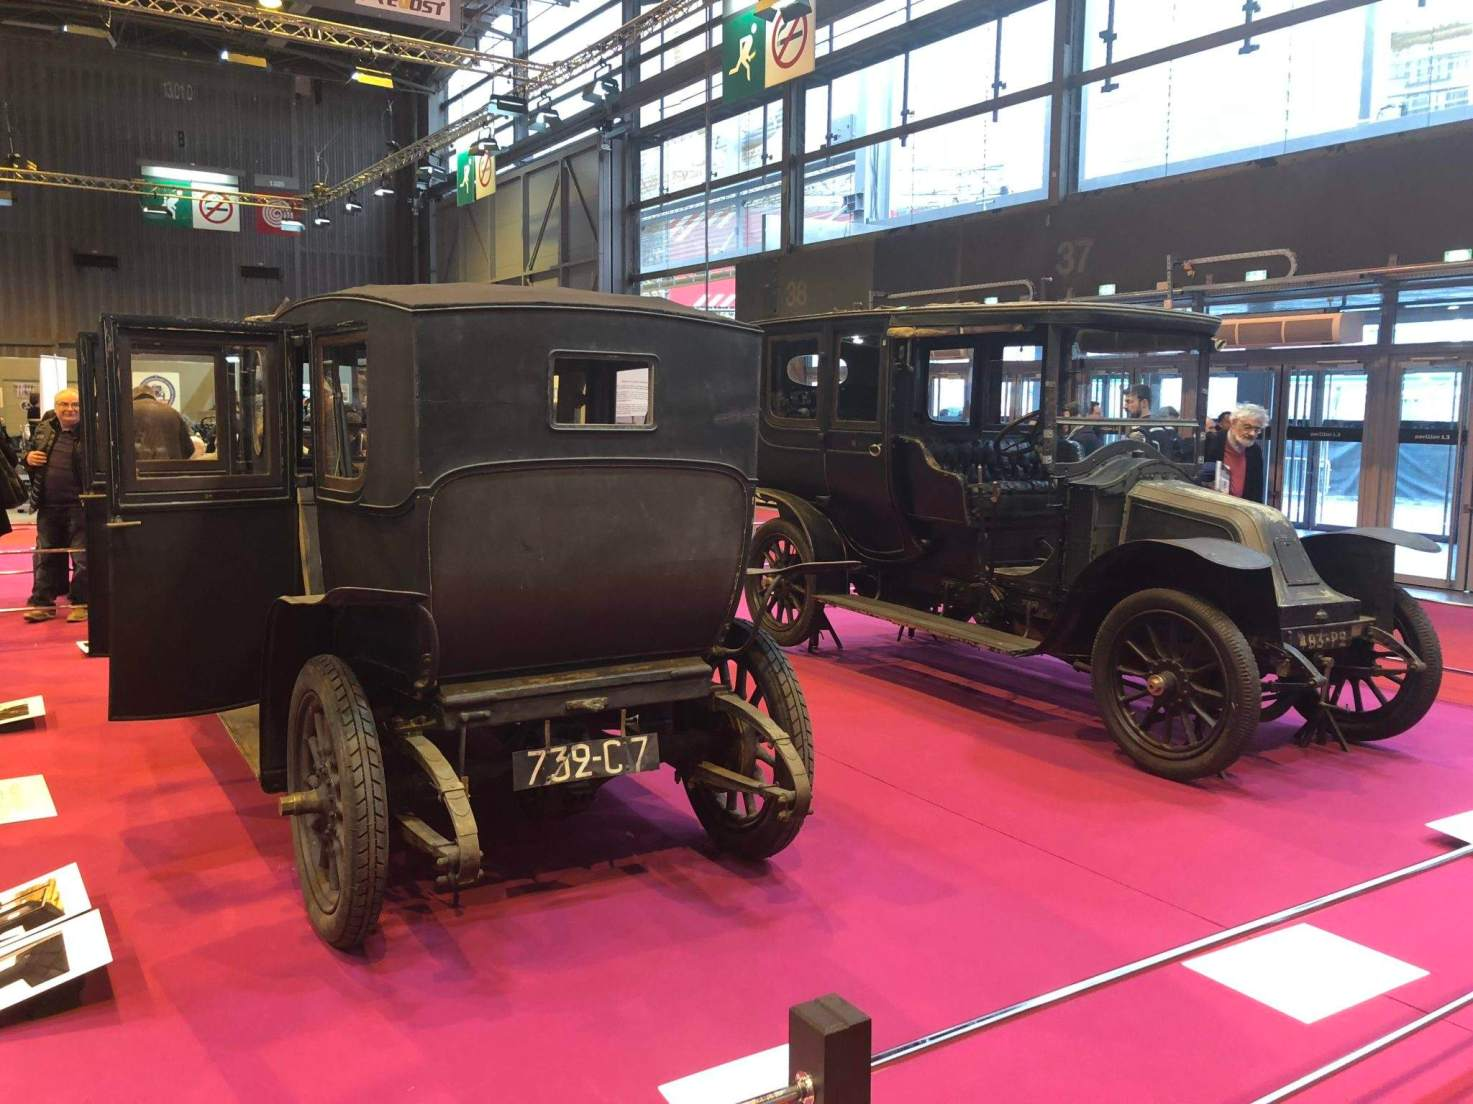 The Musée des Transports de Compiègne showed a part of their collection, including Renaults given to the museum by Louis Renault Himself in 1929!